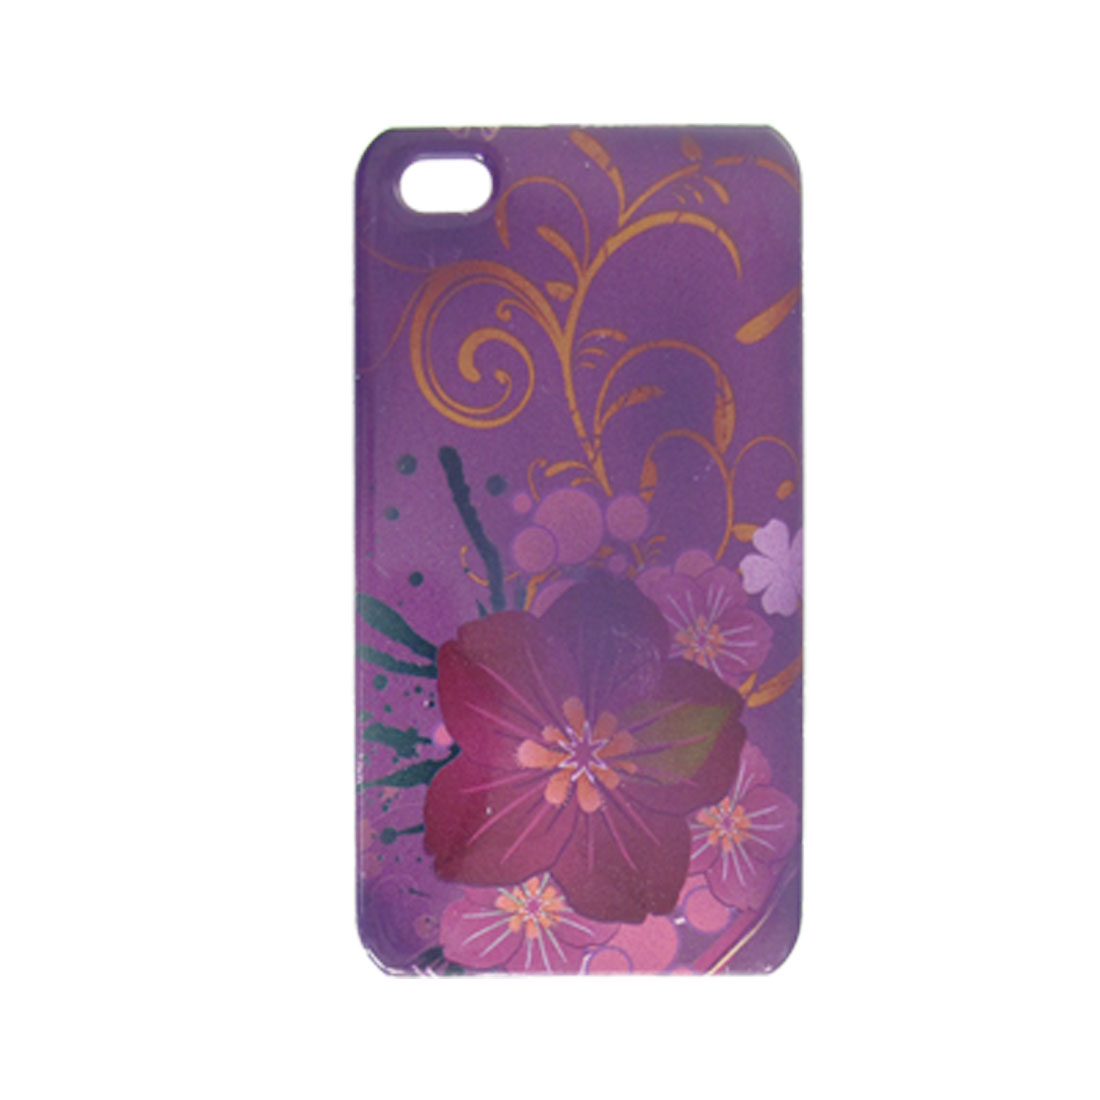 Amaranth Floral Smooth Hard Plastic Protector for iPhone 4 4G